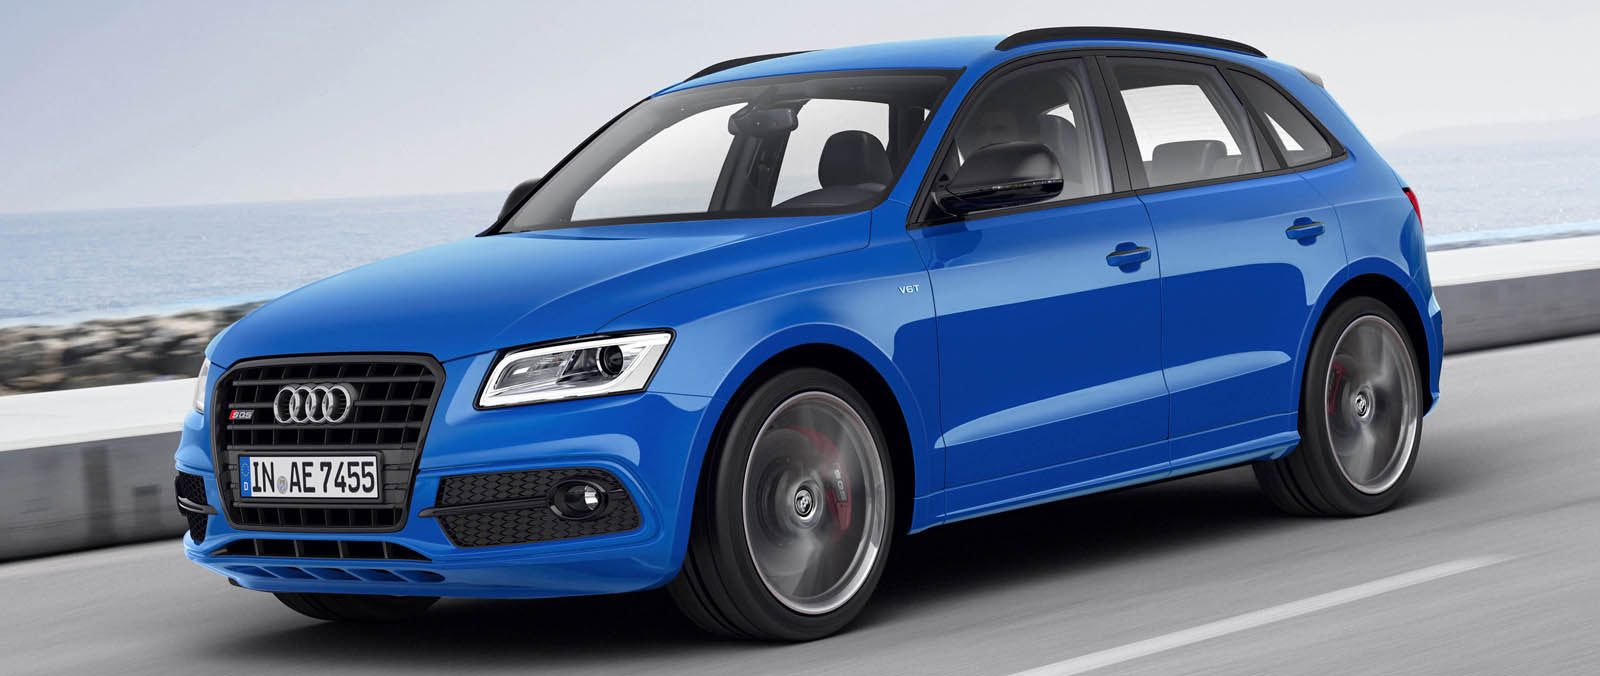 Audi SQ5 TDI plus 3.0 biturbo V6 TDI